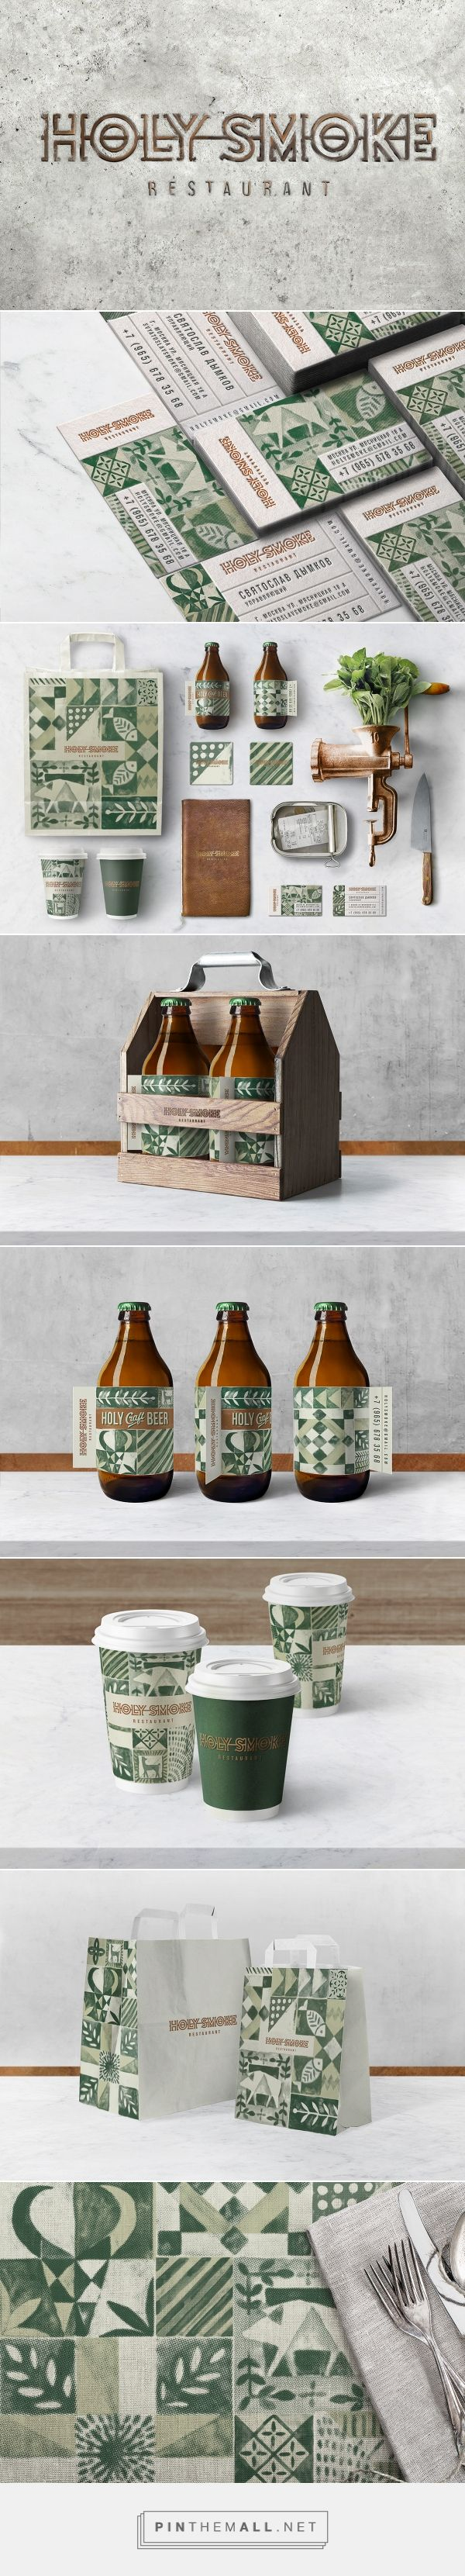 HOLY SMOKE RESTAURANT by Bureau Bumblebee on Behance curated by Packaging Diva…